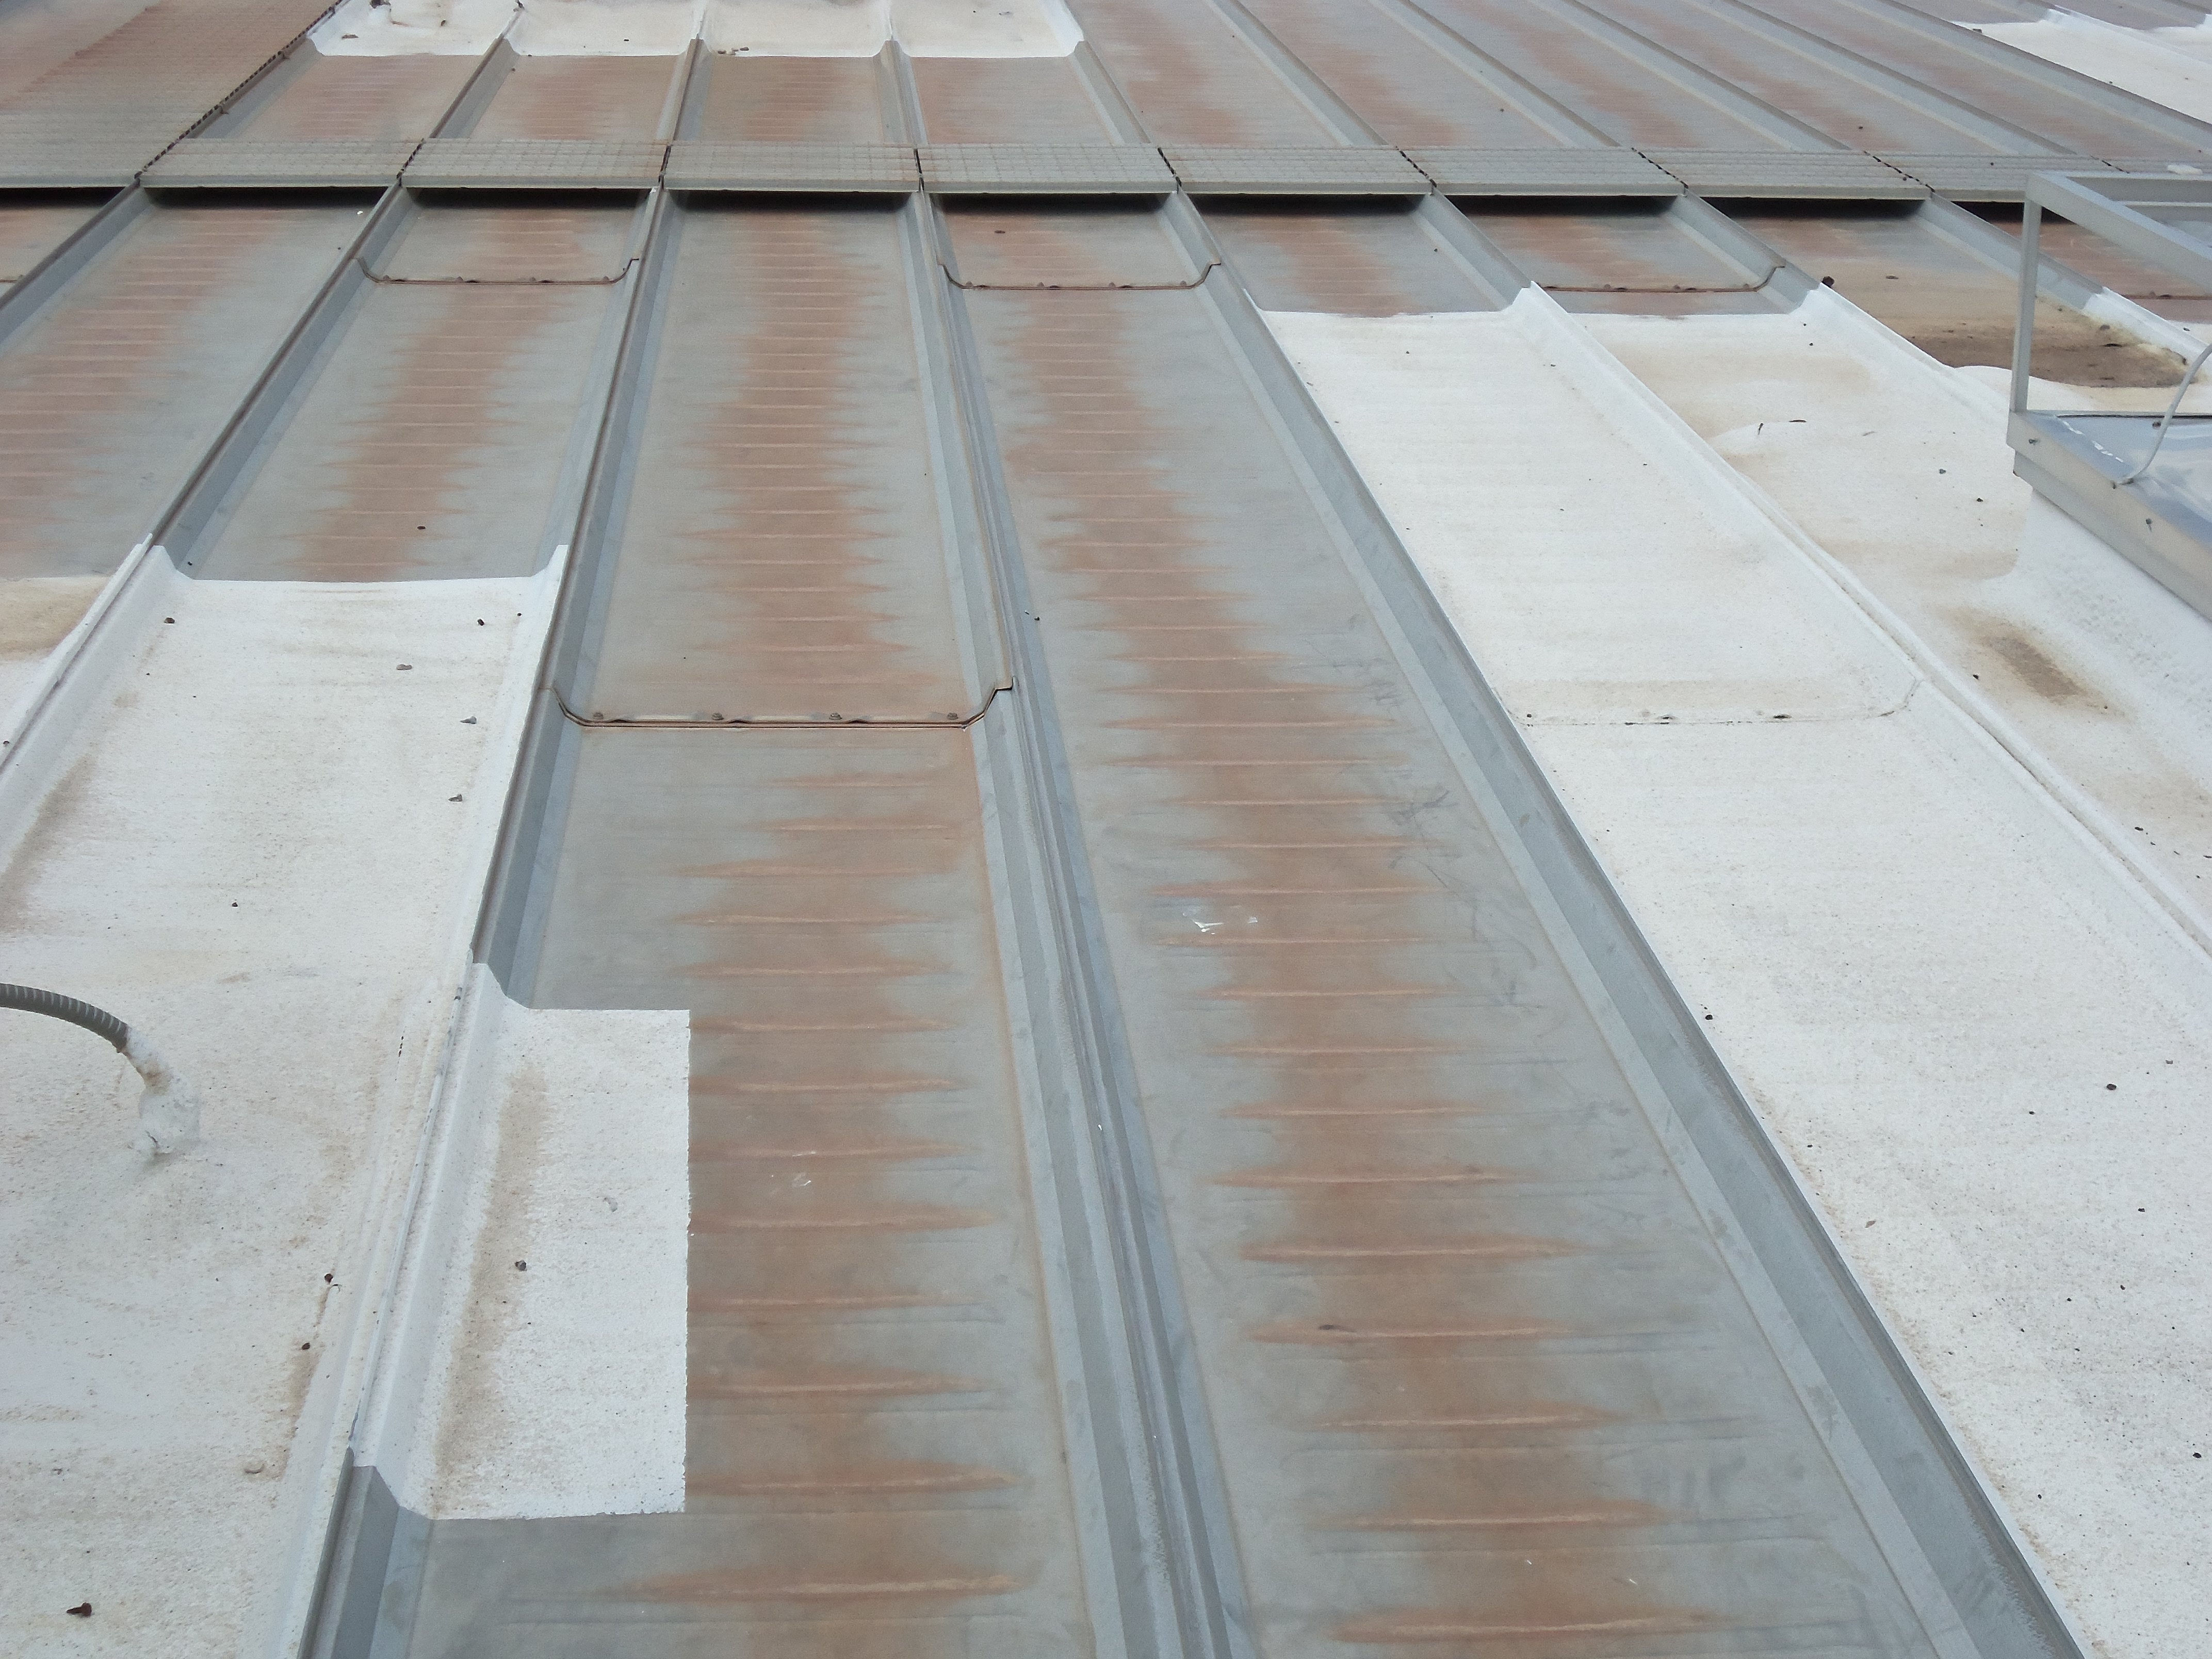 Metal Roof In Need Of Treatment